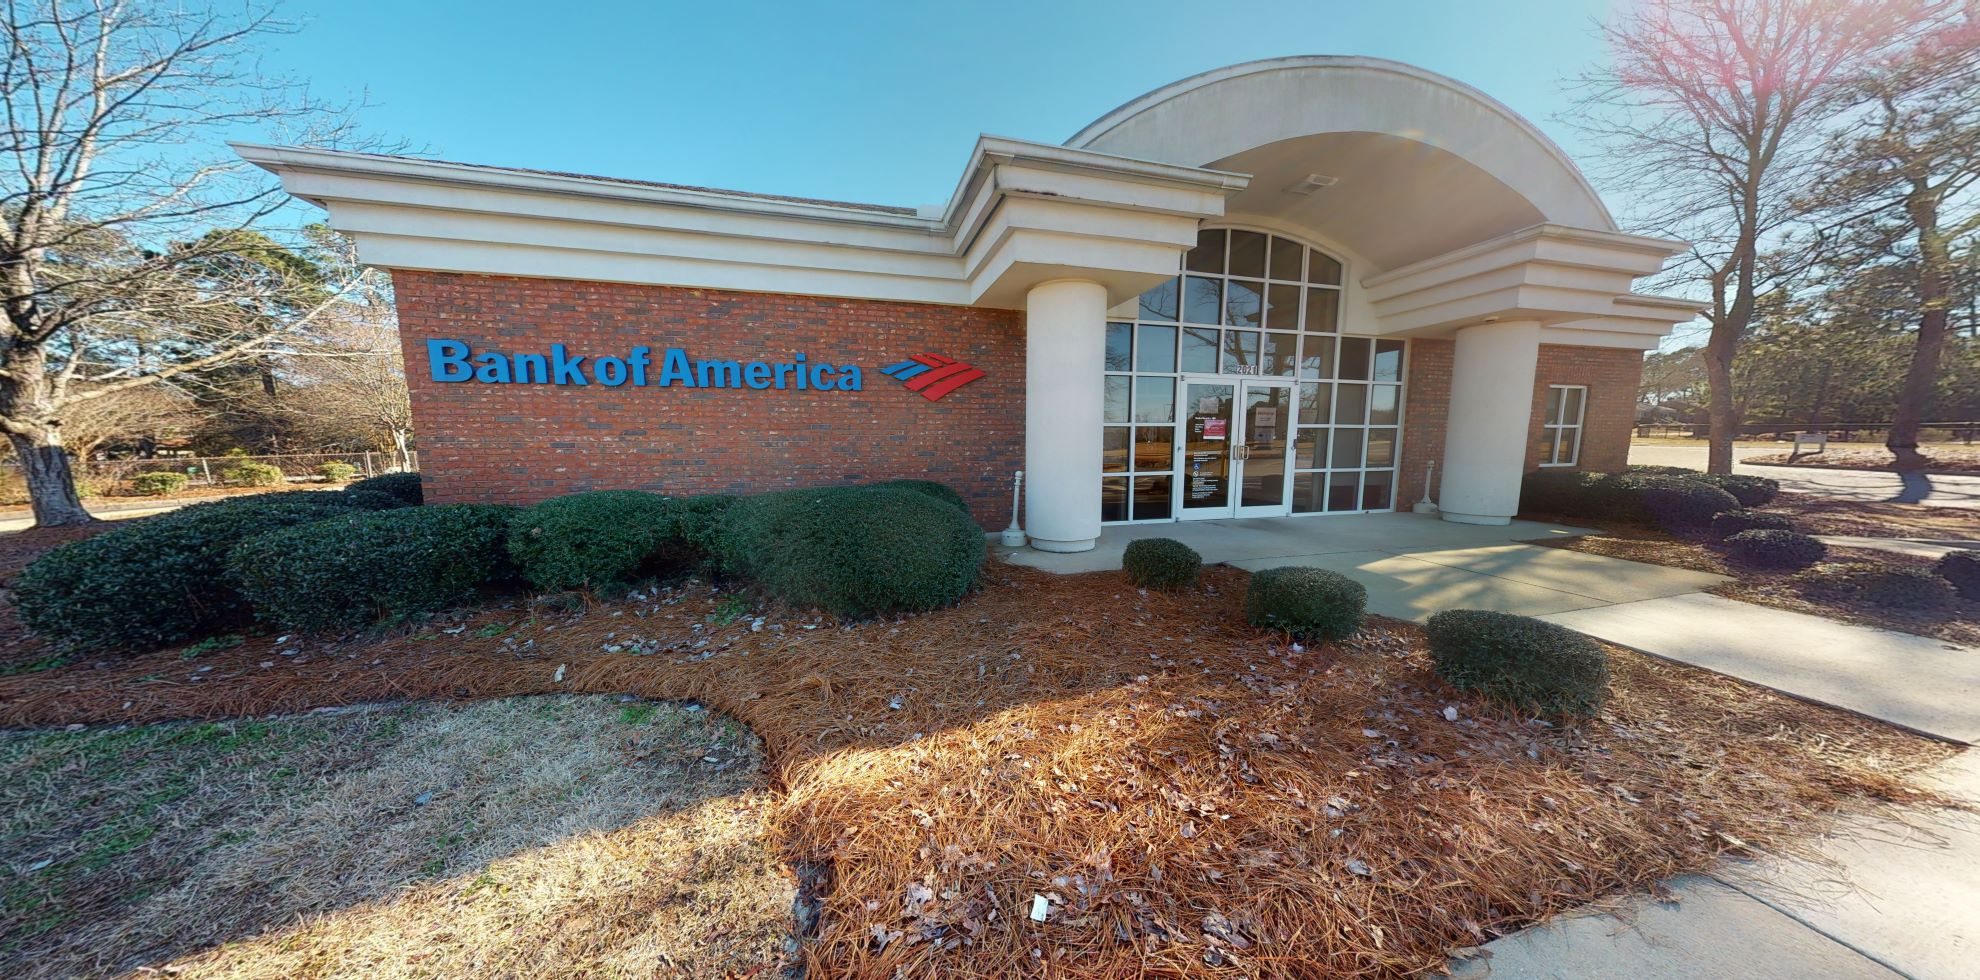 Bank of America financial center with drive-thru ATM   2021 Sunset Blvd, West Columbia, SC 29169